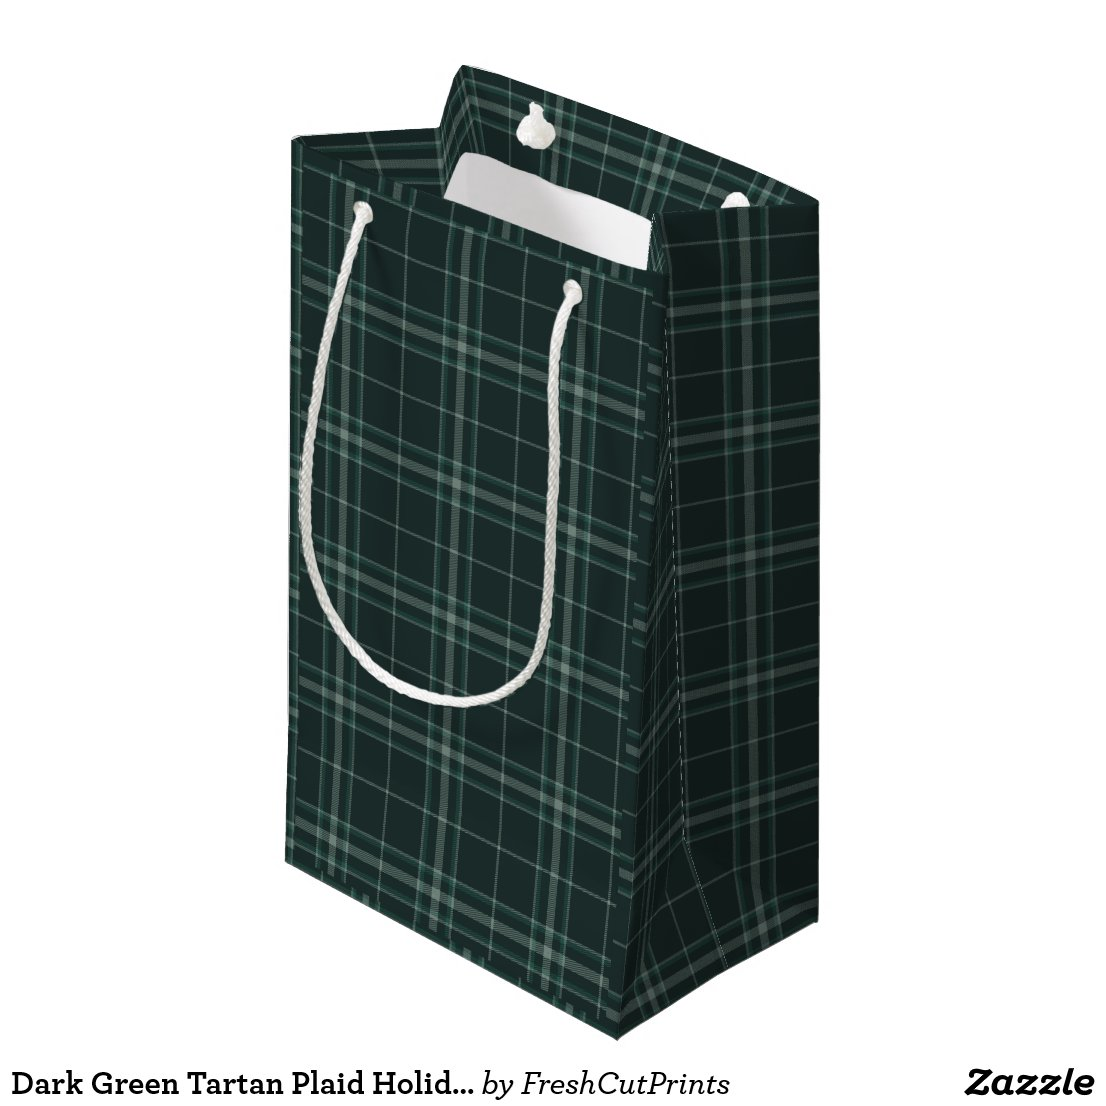 Dark Green Tartan Plaid Holiday and Christmas Small Gift Bag